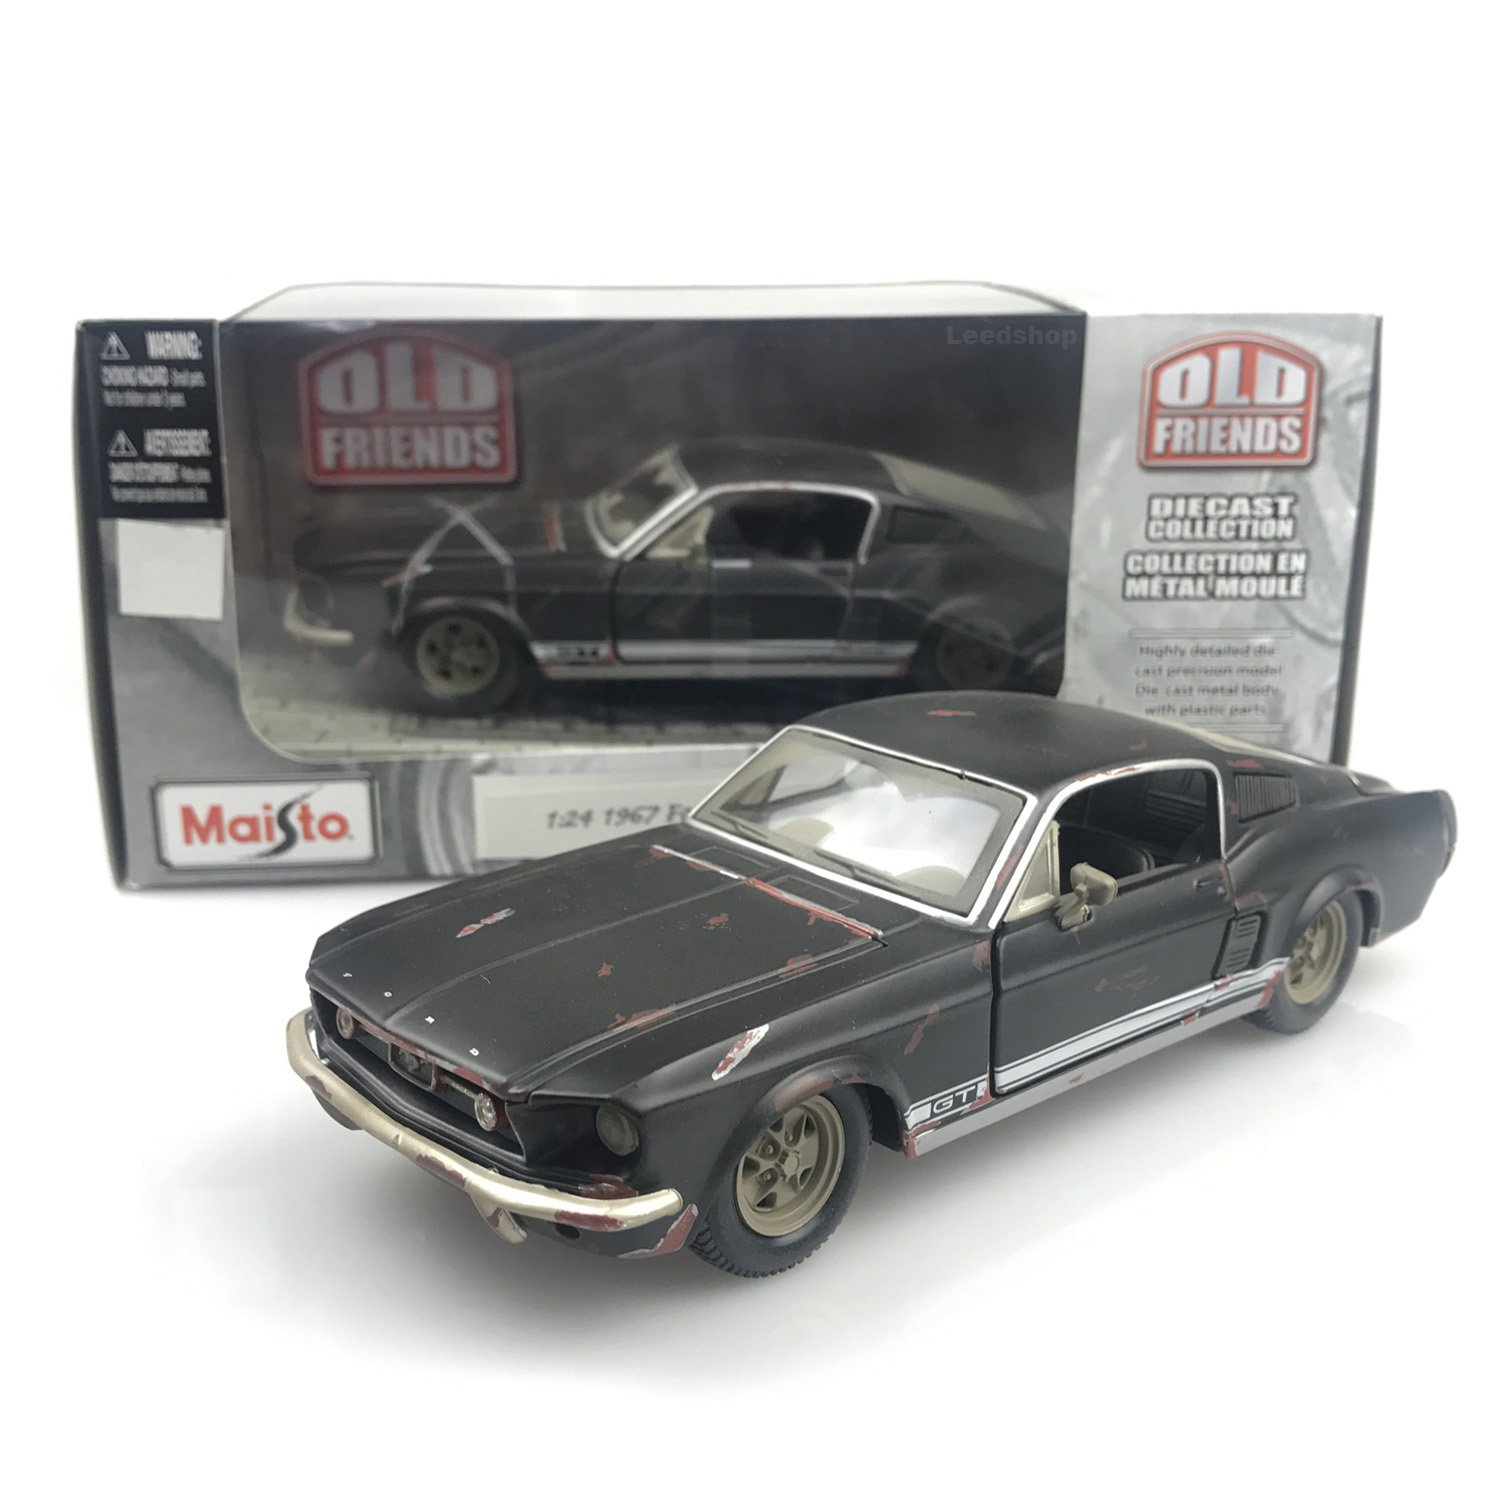 Amazon com maisto 124 scale 1967 ford mustang gt rusty old friends 1 24 diecast model car toys games